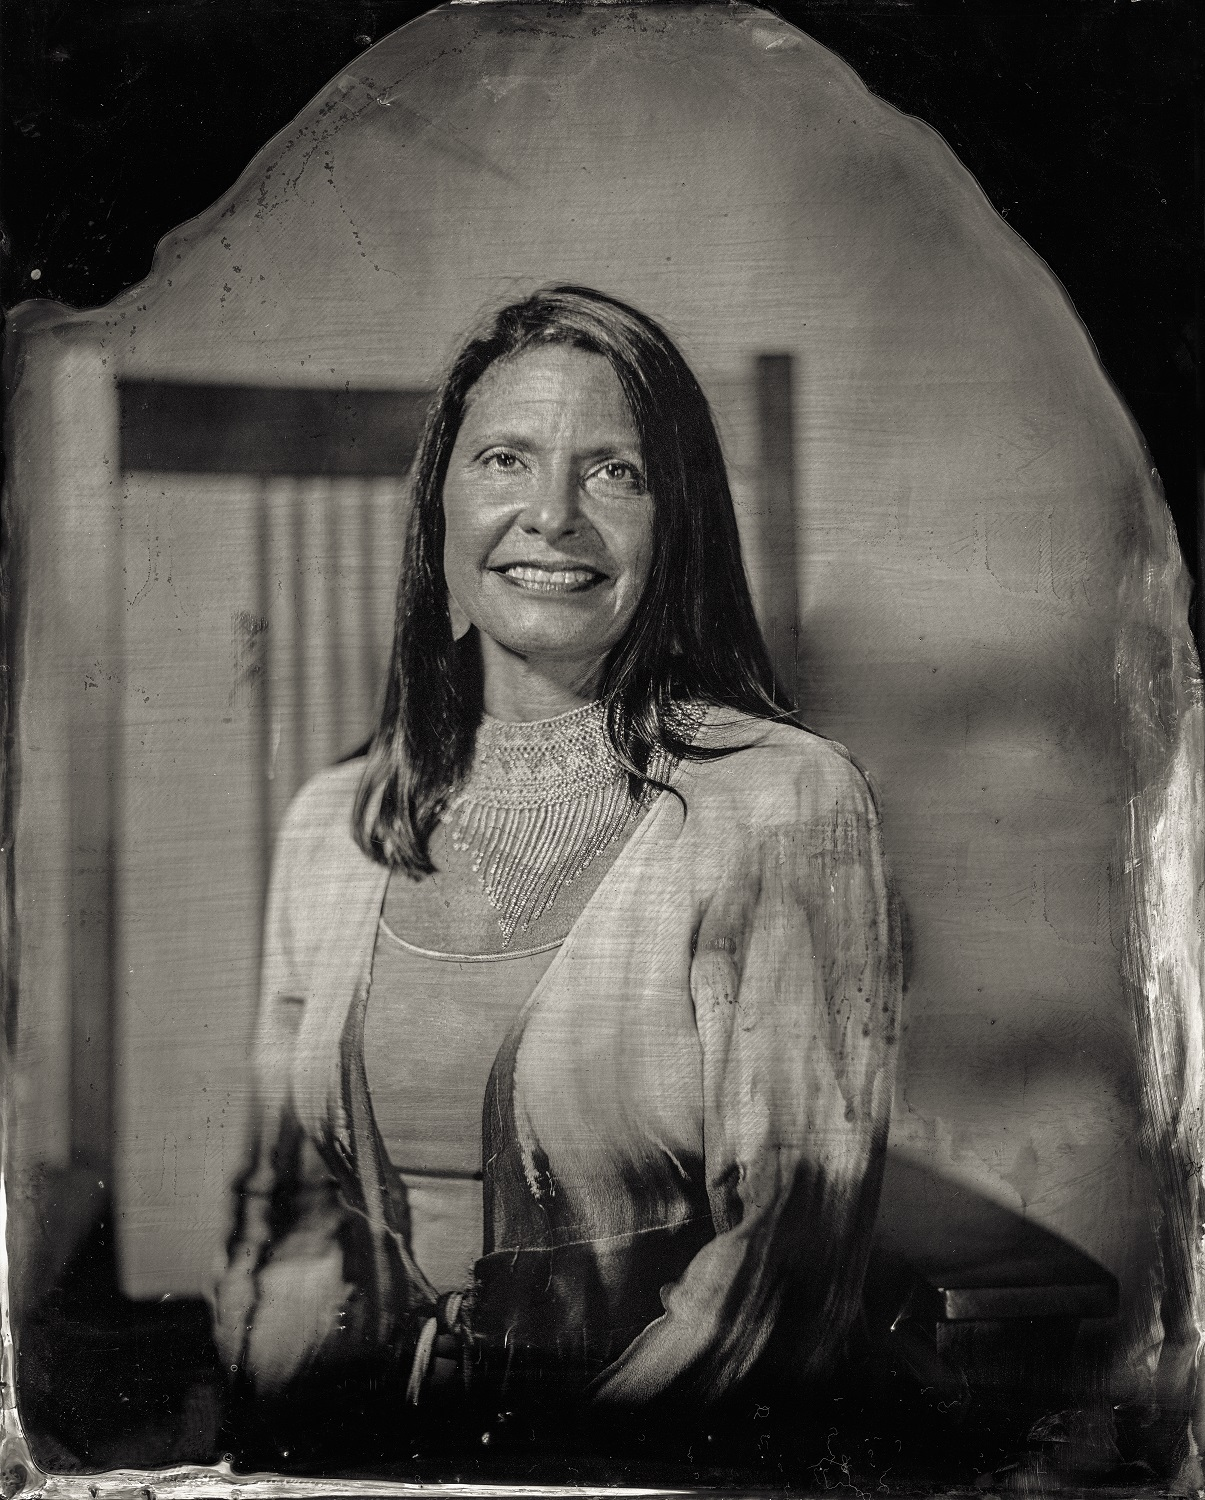 Shoshana Wasserman, citizen of Muscogee (Creek) Nation and affiliated Thlopthlocco Tribal Town, 2016